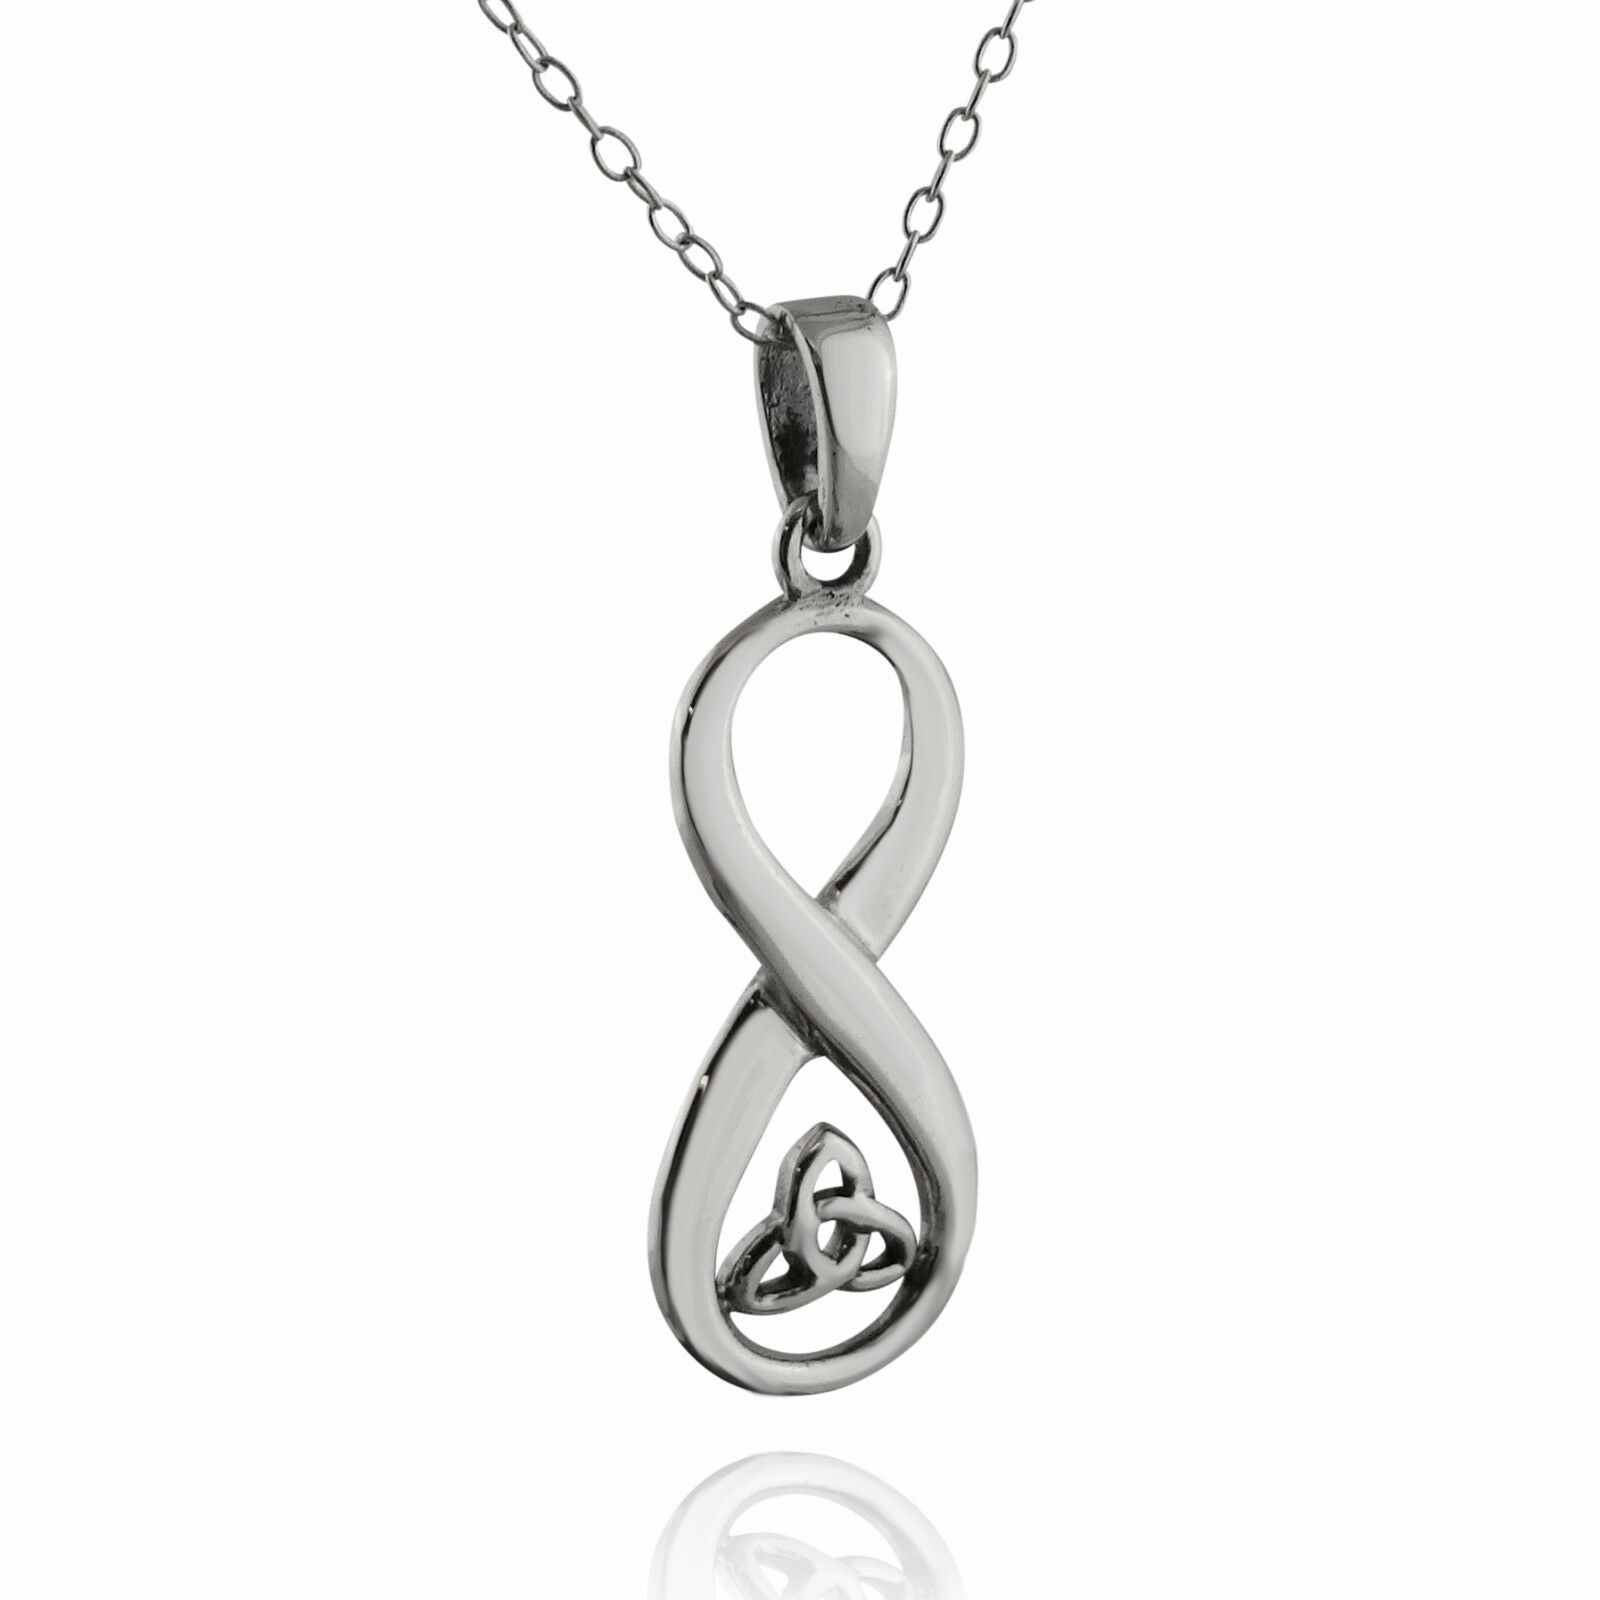 Trinity Knot Infinity Sign Necklace - 925 Sterling Silver Pendant Love Gift NEW